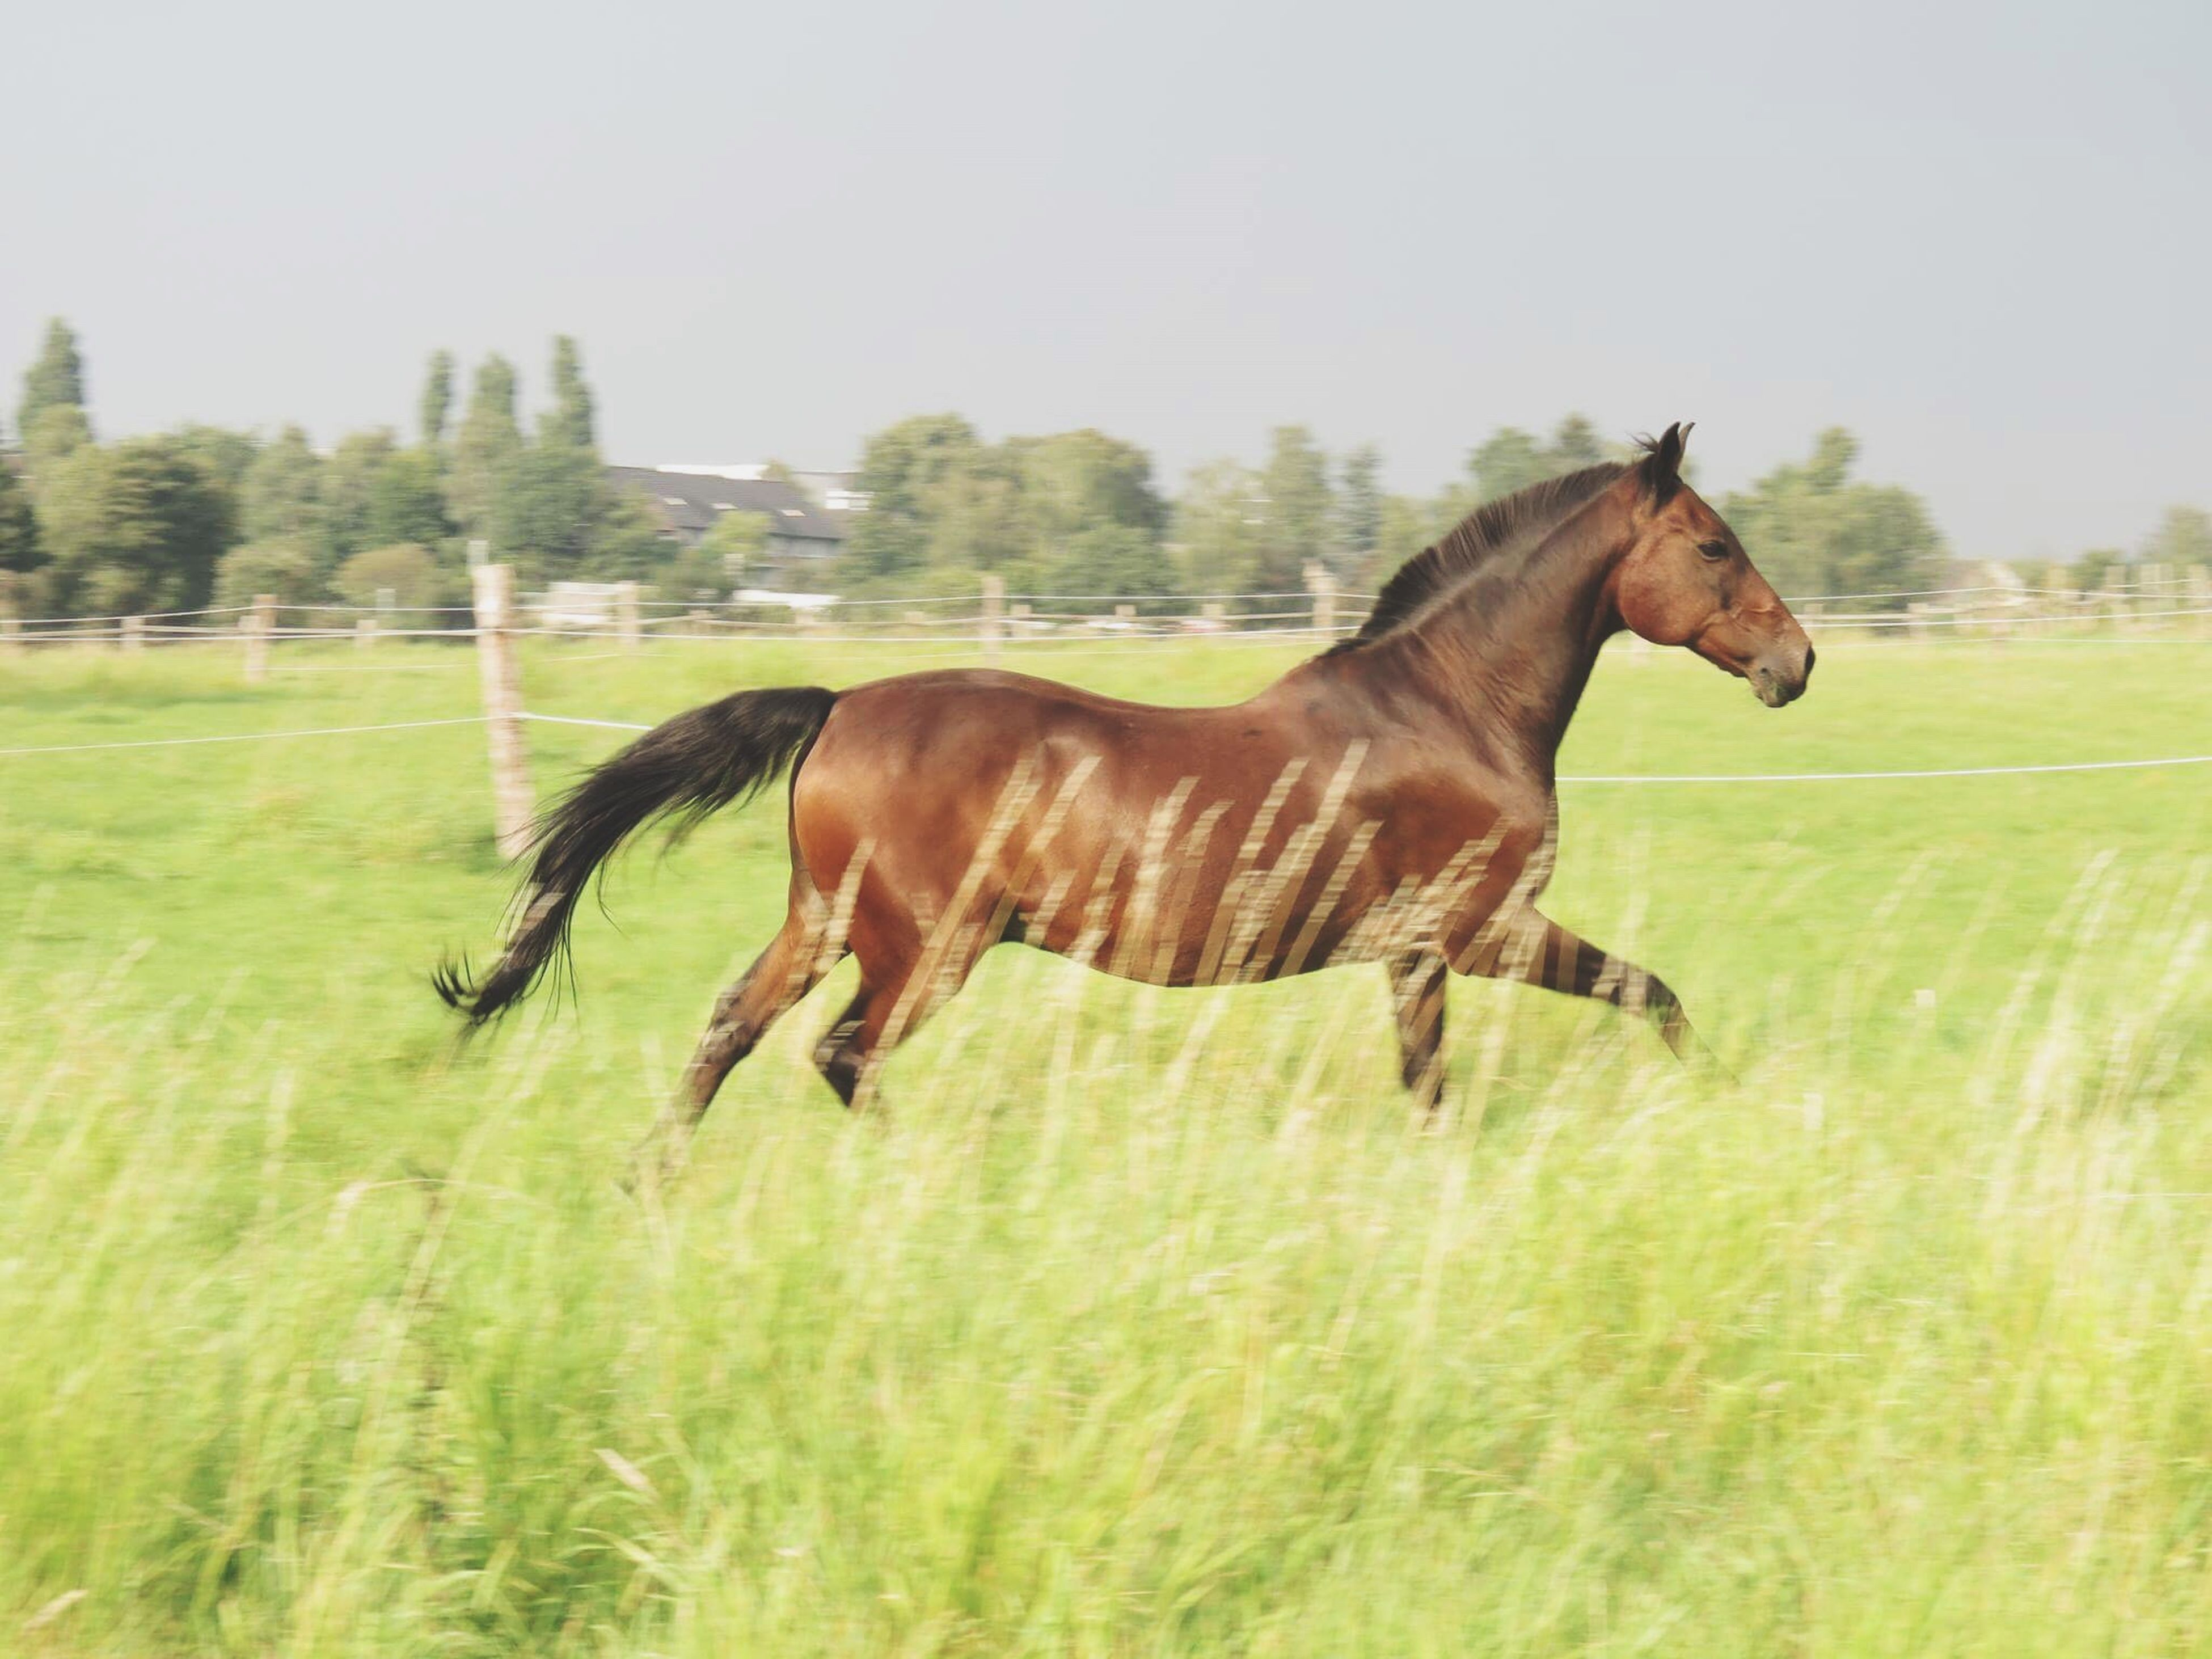 horse, animal themes, domestic animals, grass, side view, mammal, field, grassy, one animal, livestock, full length, clear sky, herbivorous, green color, day, nature, no people, zoology, animal hair, tranquility